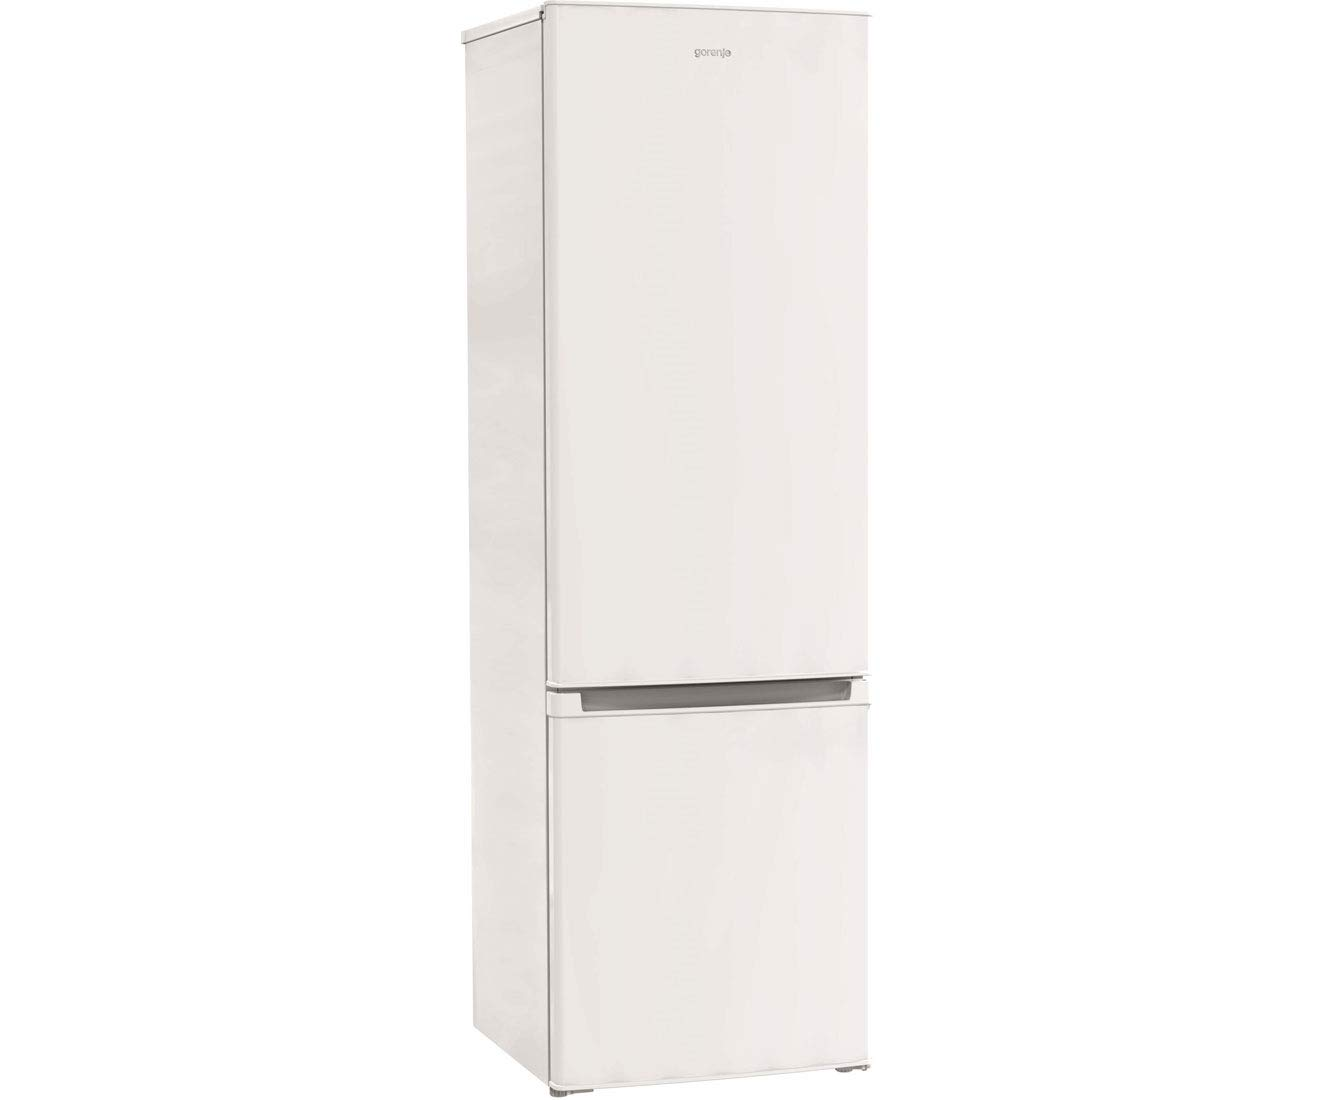 Gorenje rk417 2anw nevera/congelador, color blanco: Amazon.es ...